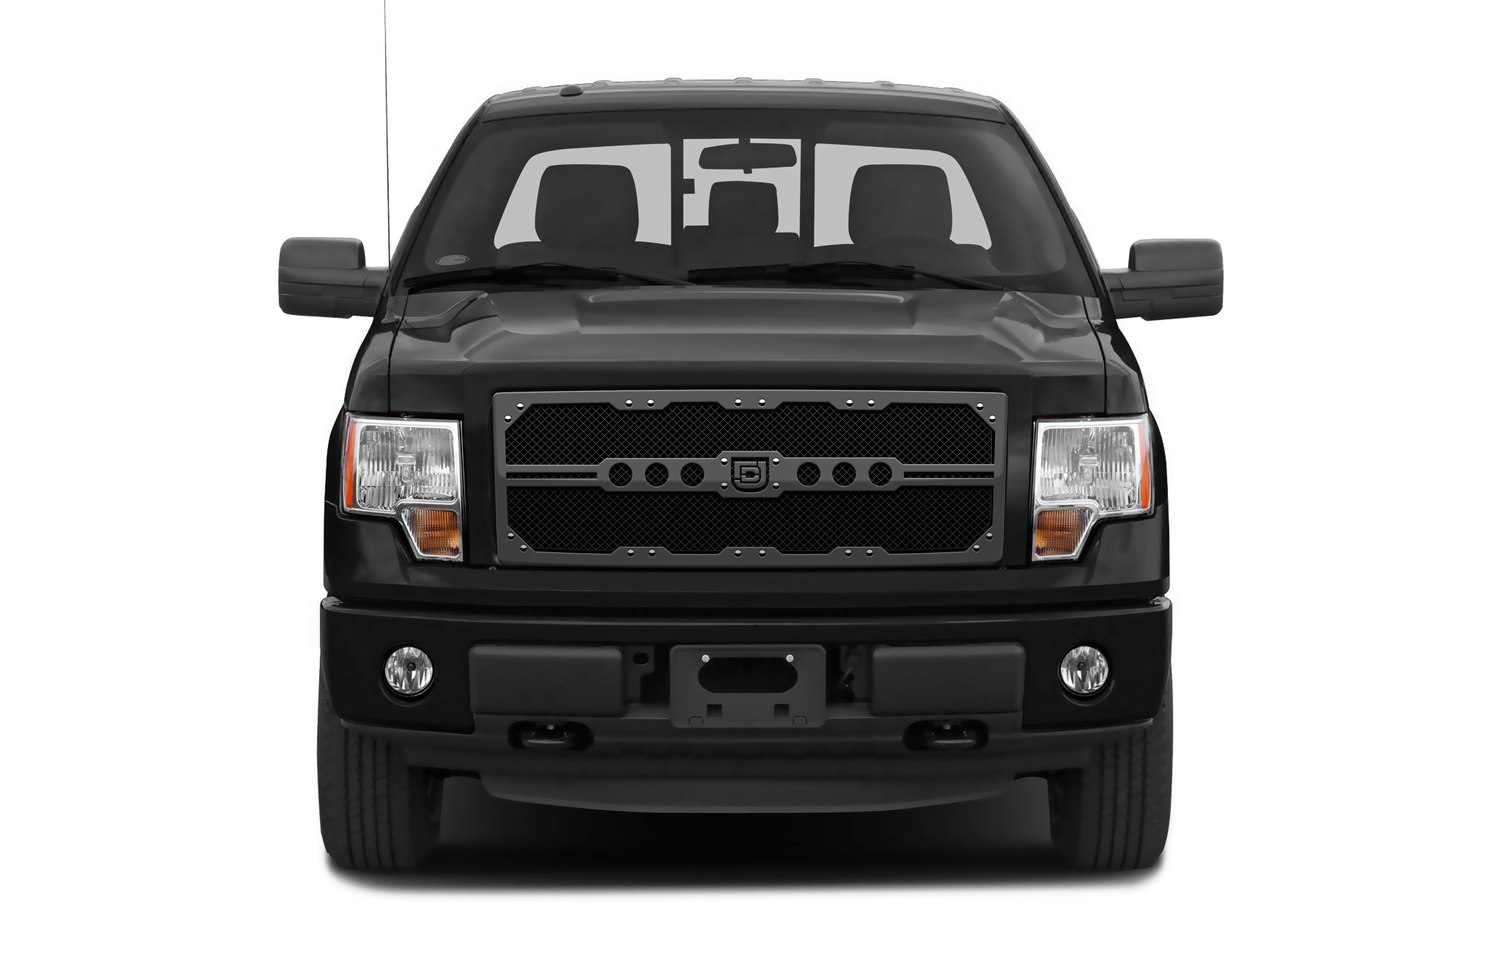 Sniper Truck Grille Primary Grille For 1999 2003 Ford F150